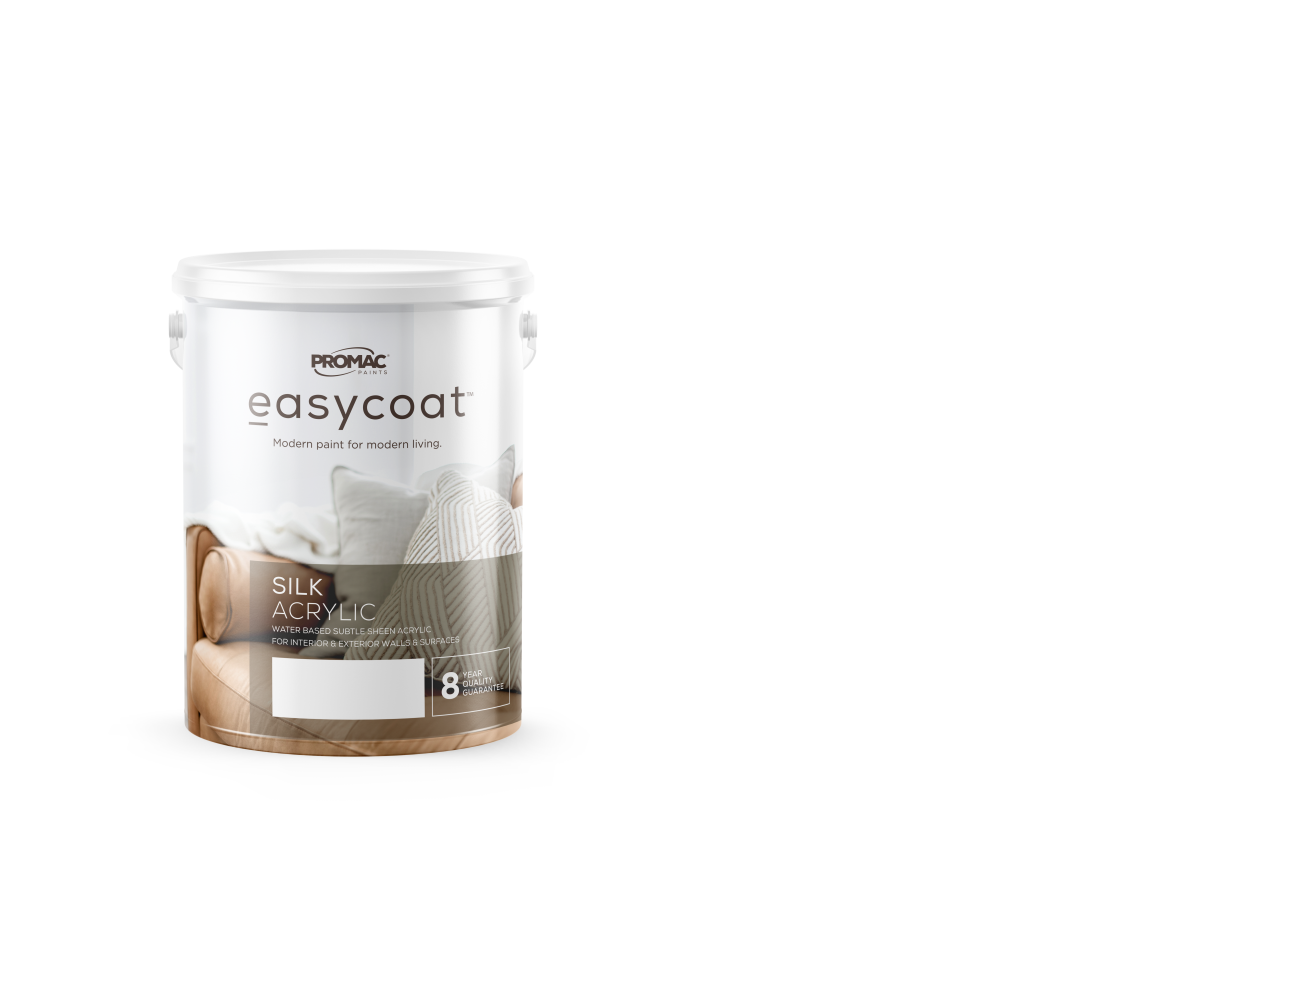 SILKACRYLIC - WATER BASEDPromac Easycoat Silk is an acrylic wall coating, which has been specially formulated to decorate and protect interior and exterior surfaces.